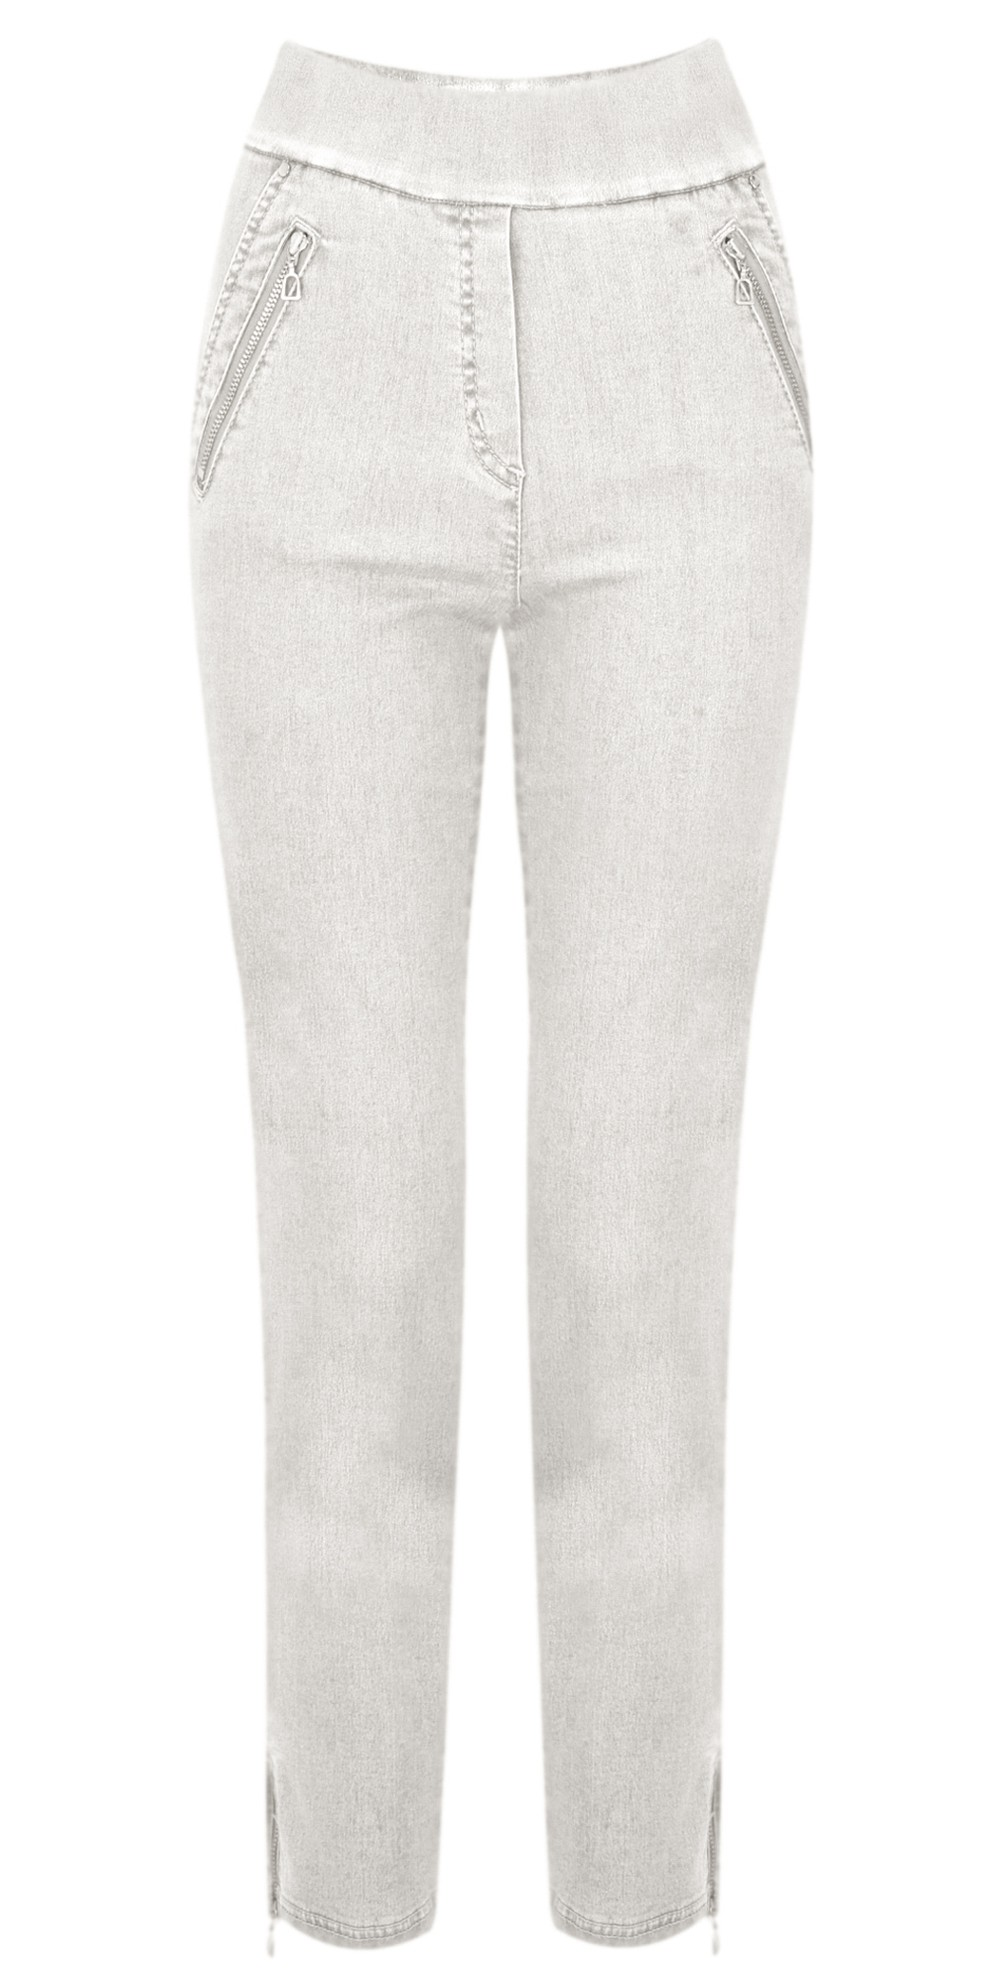 Nena 09 7/8 Ankle Zip Cropped Jeans main image